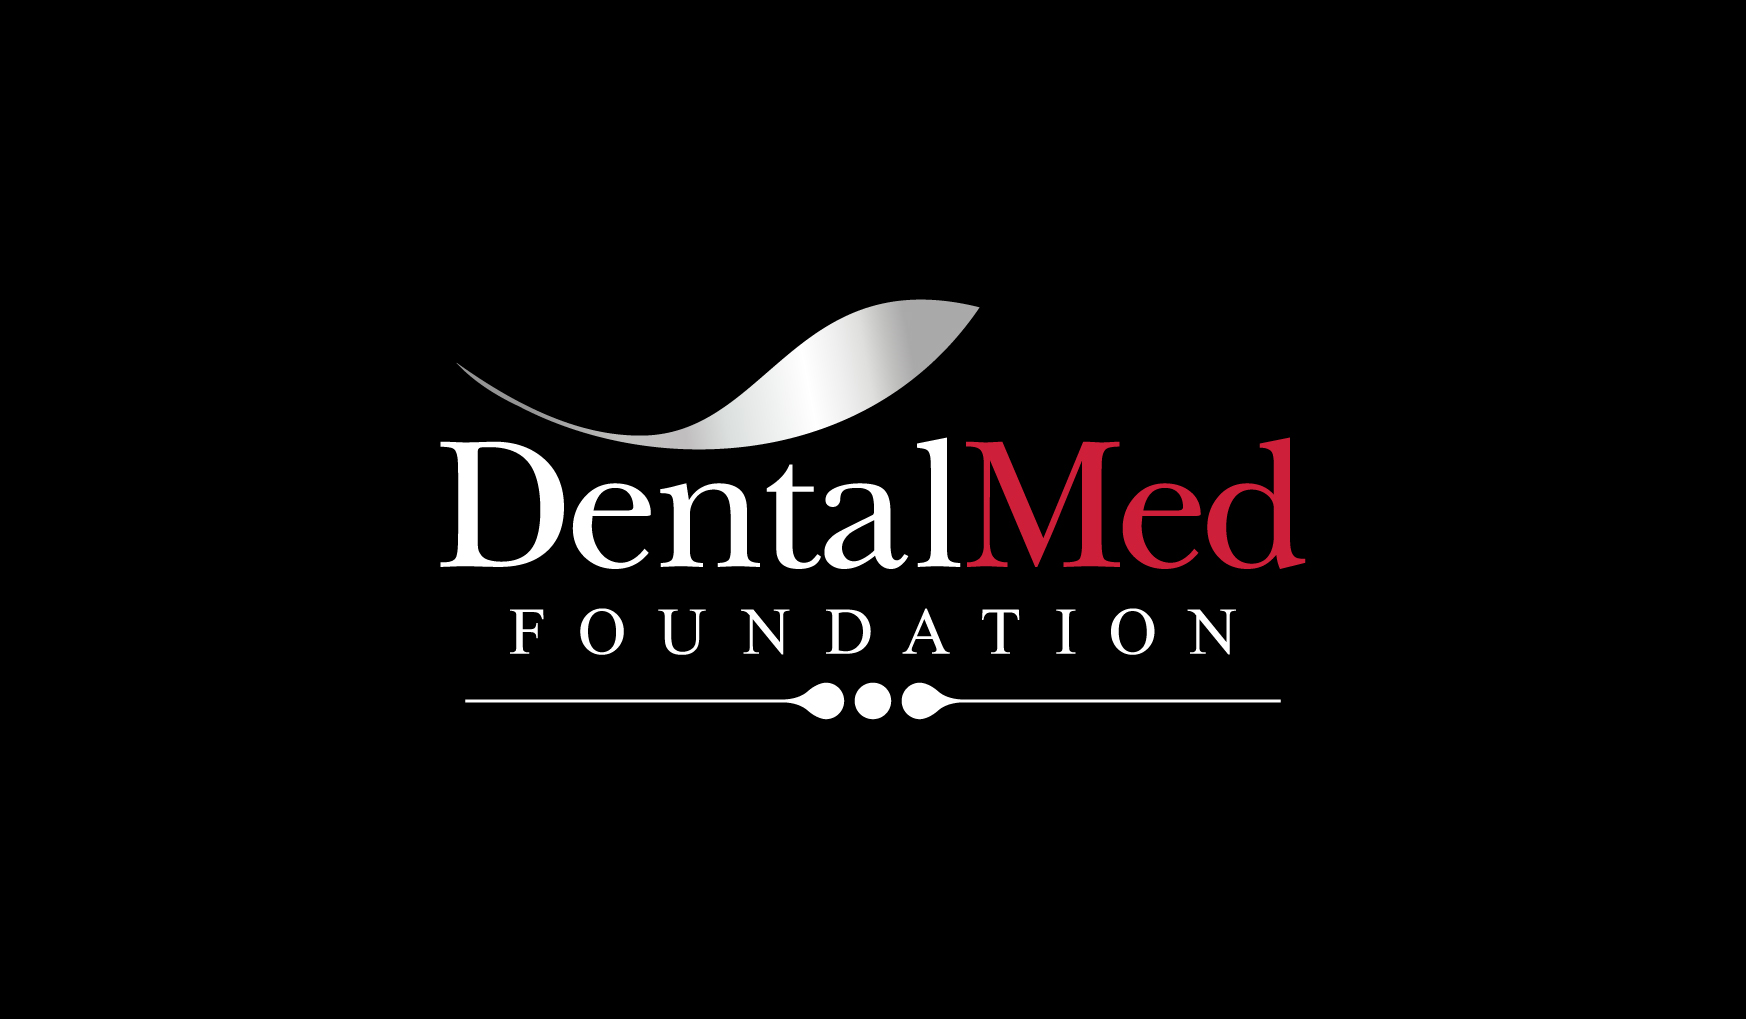 Dental Med Foundation